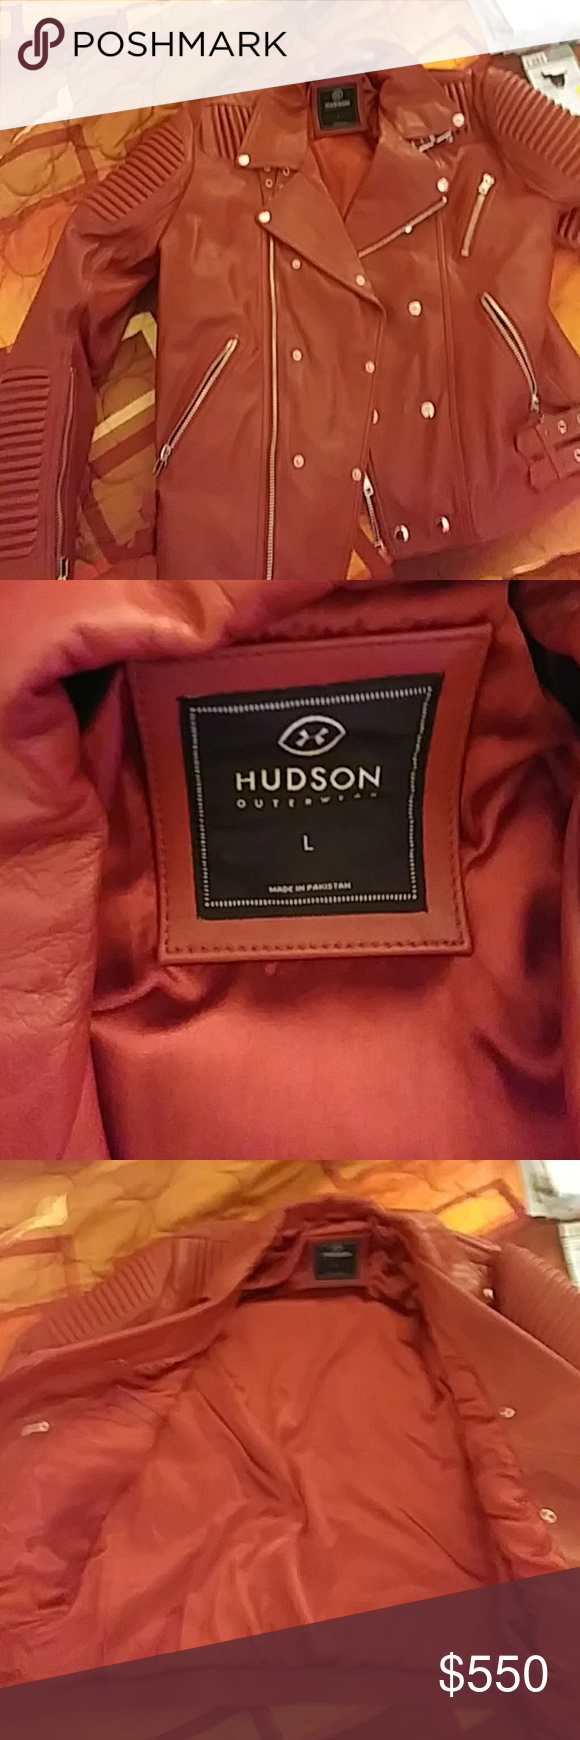 Mens Authentic Hudson Leather Jacket Mike Jackson All Red Leather Jacket Only Been Worn Once Out Of The Store Huds Leather Jacket Jackets Red Leather Jacket [ 1740 x 580 Pixel ]